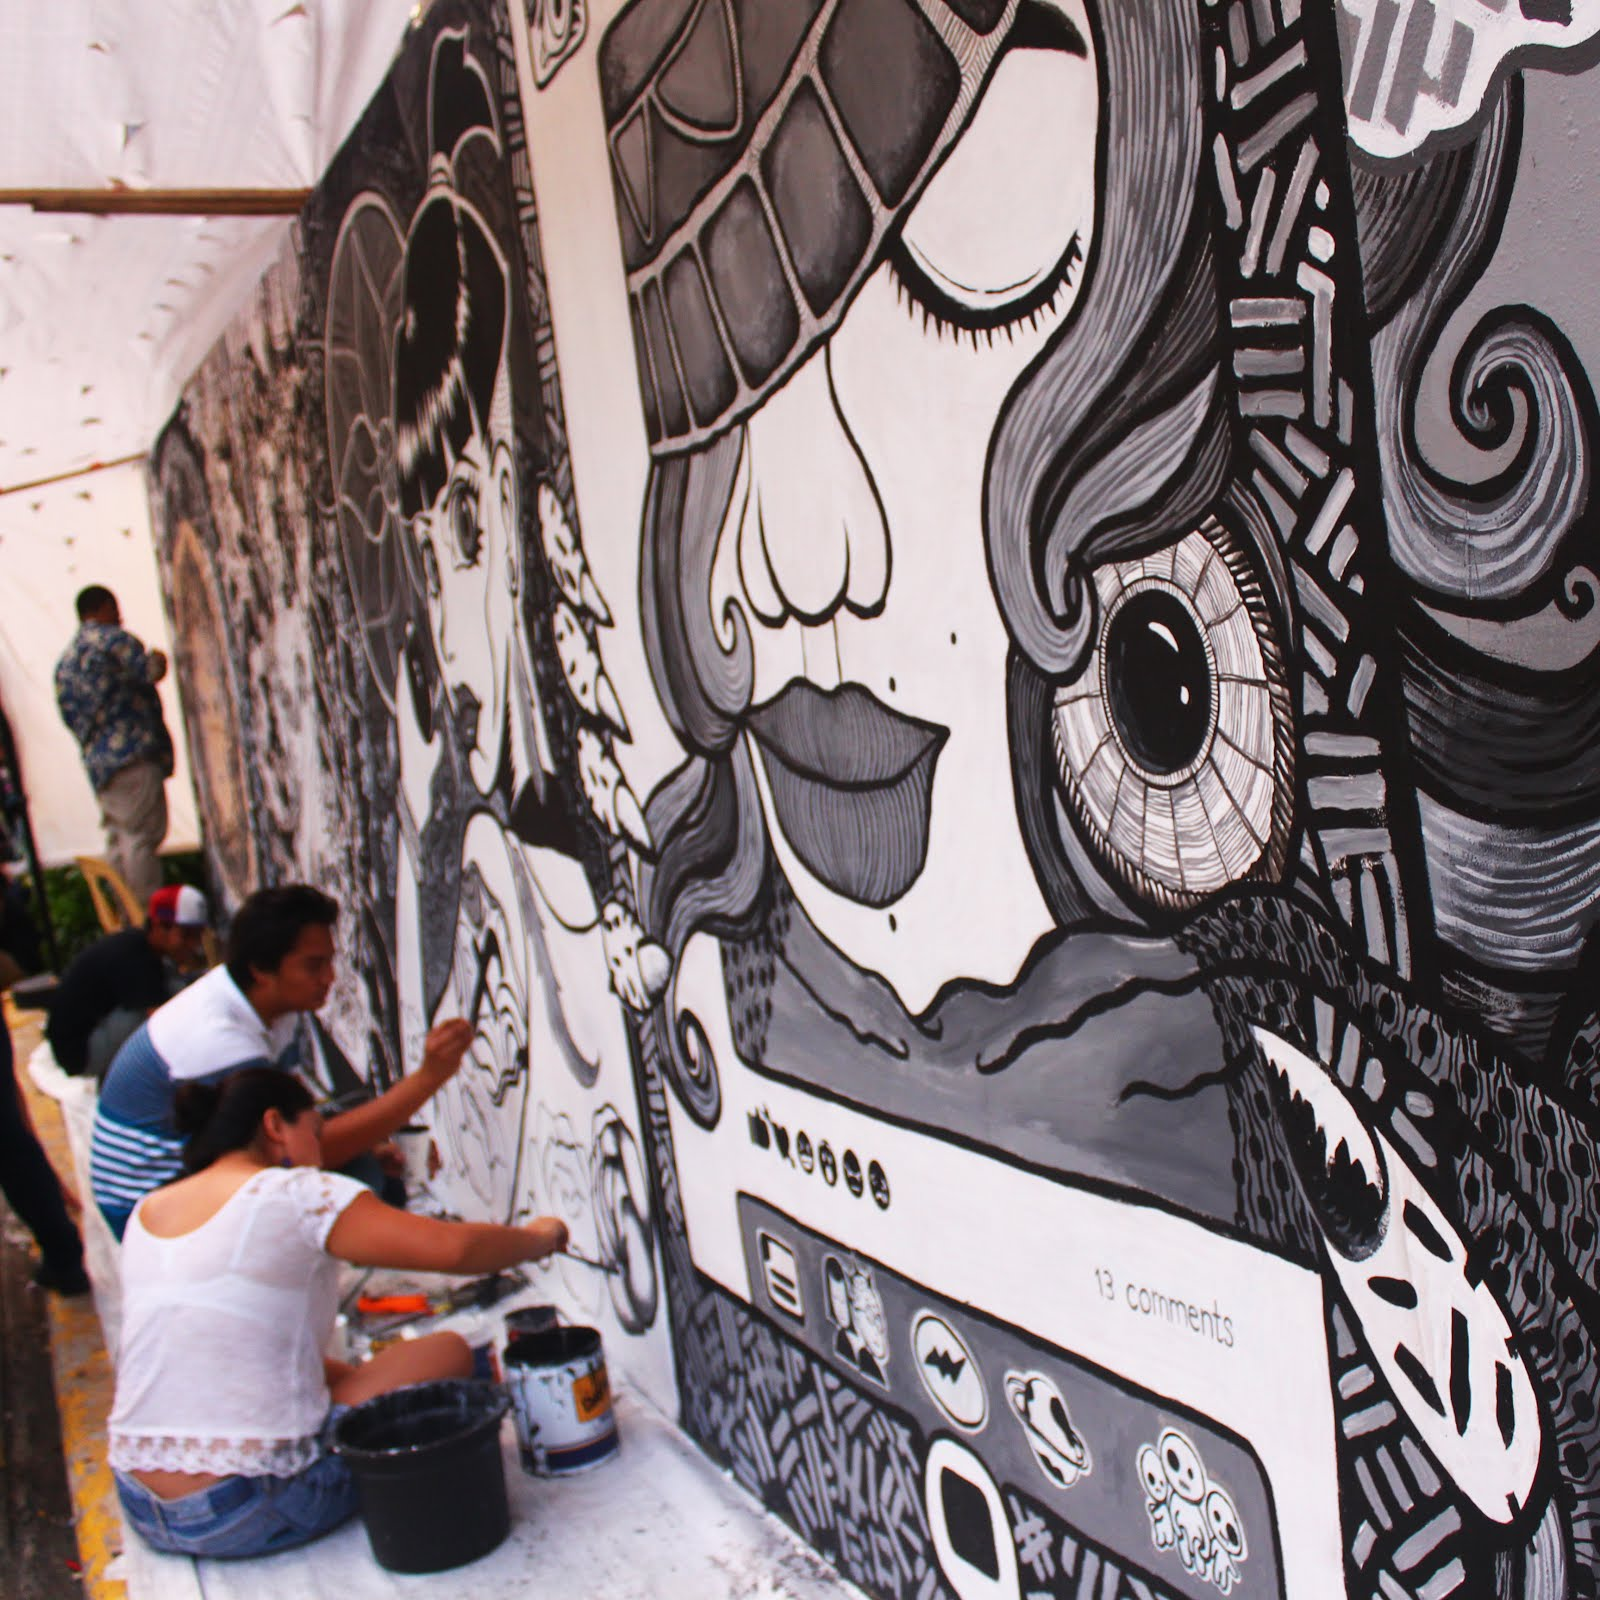 Larger and larger circles Iloilo's 'burgeoning' cultural movement shows no sign of slowing down. Community, Art, Artivism, Advocacy, Iloilo, ViVa ExCon, Kat Malazarte, Kristine Buenavista, Marrz Capanang, Jonn Laserna, Street, street art